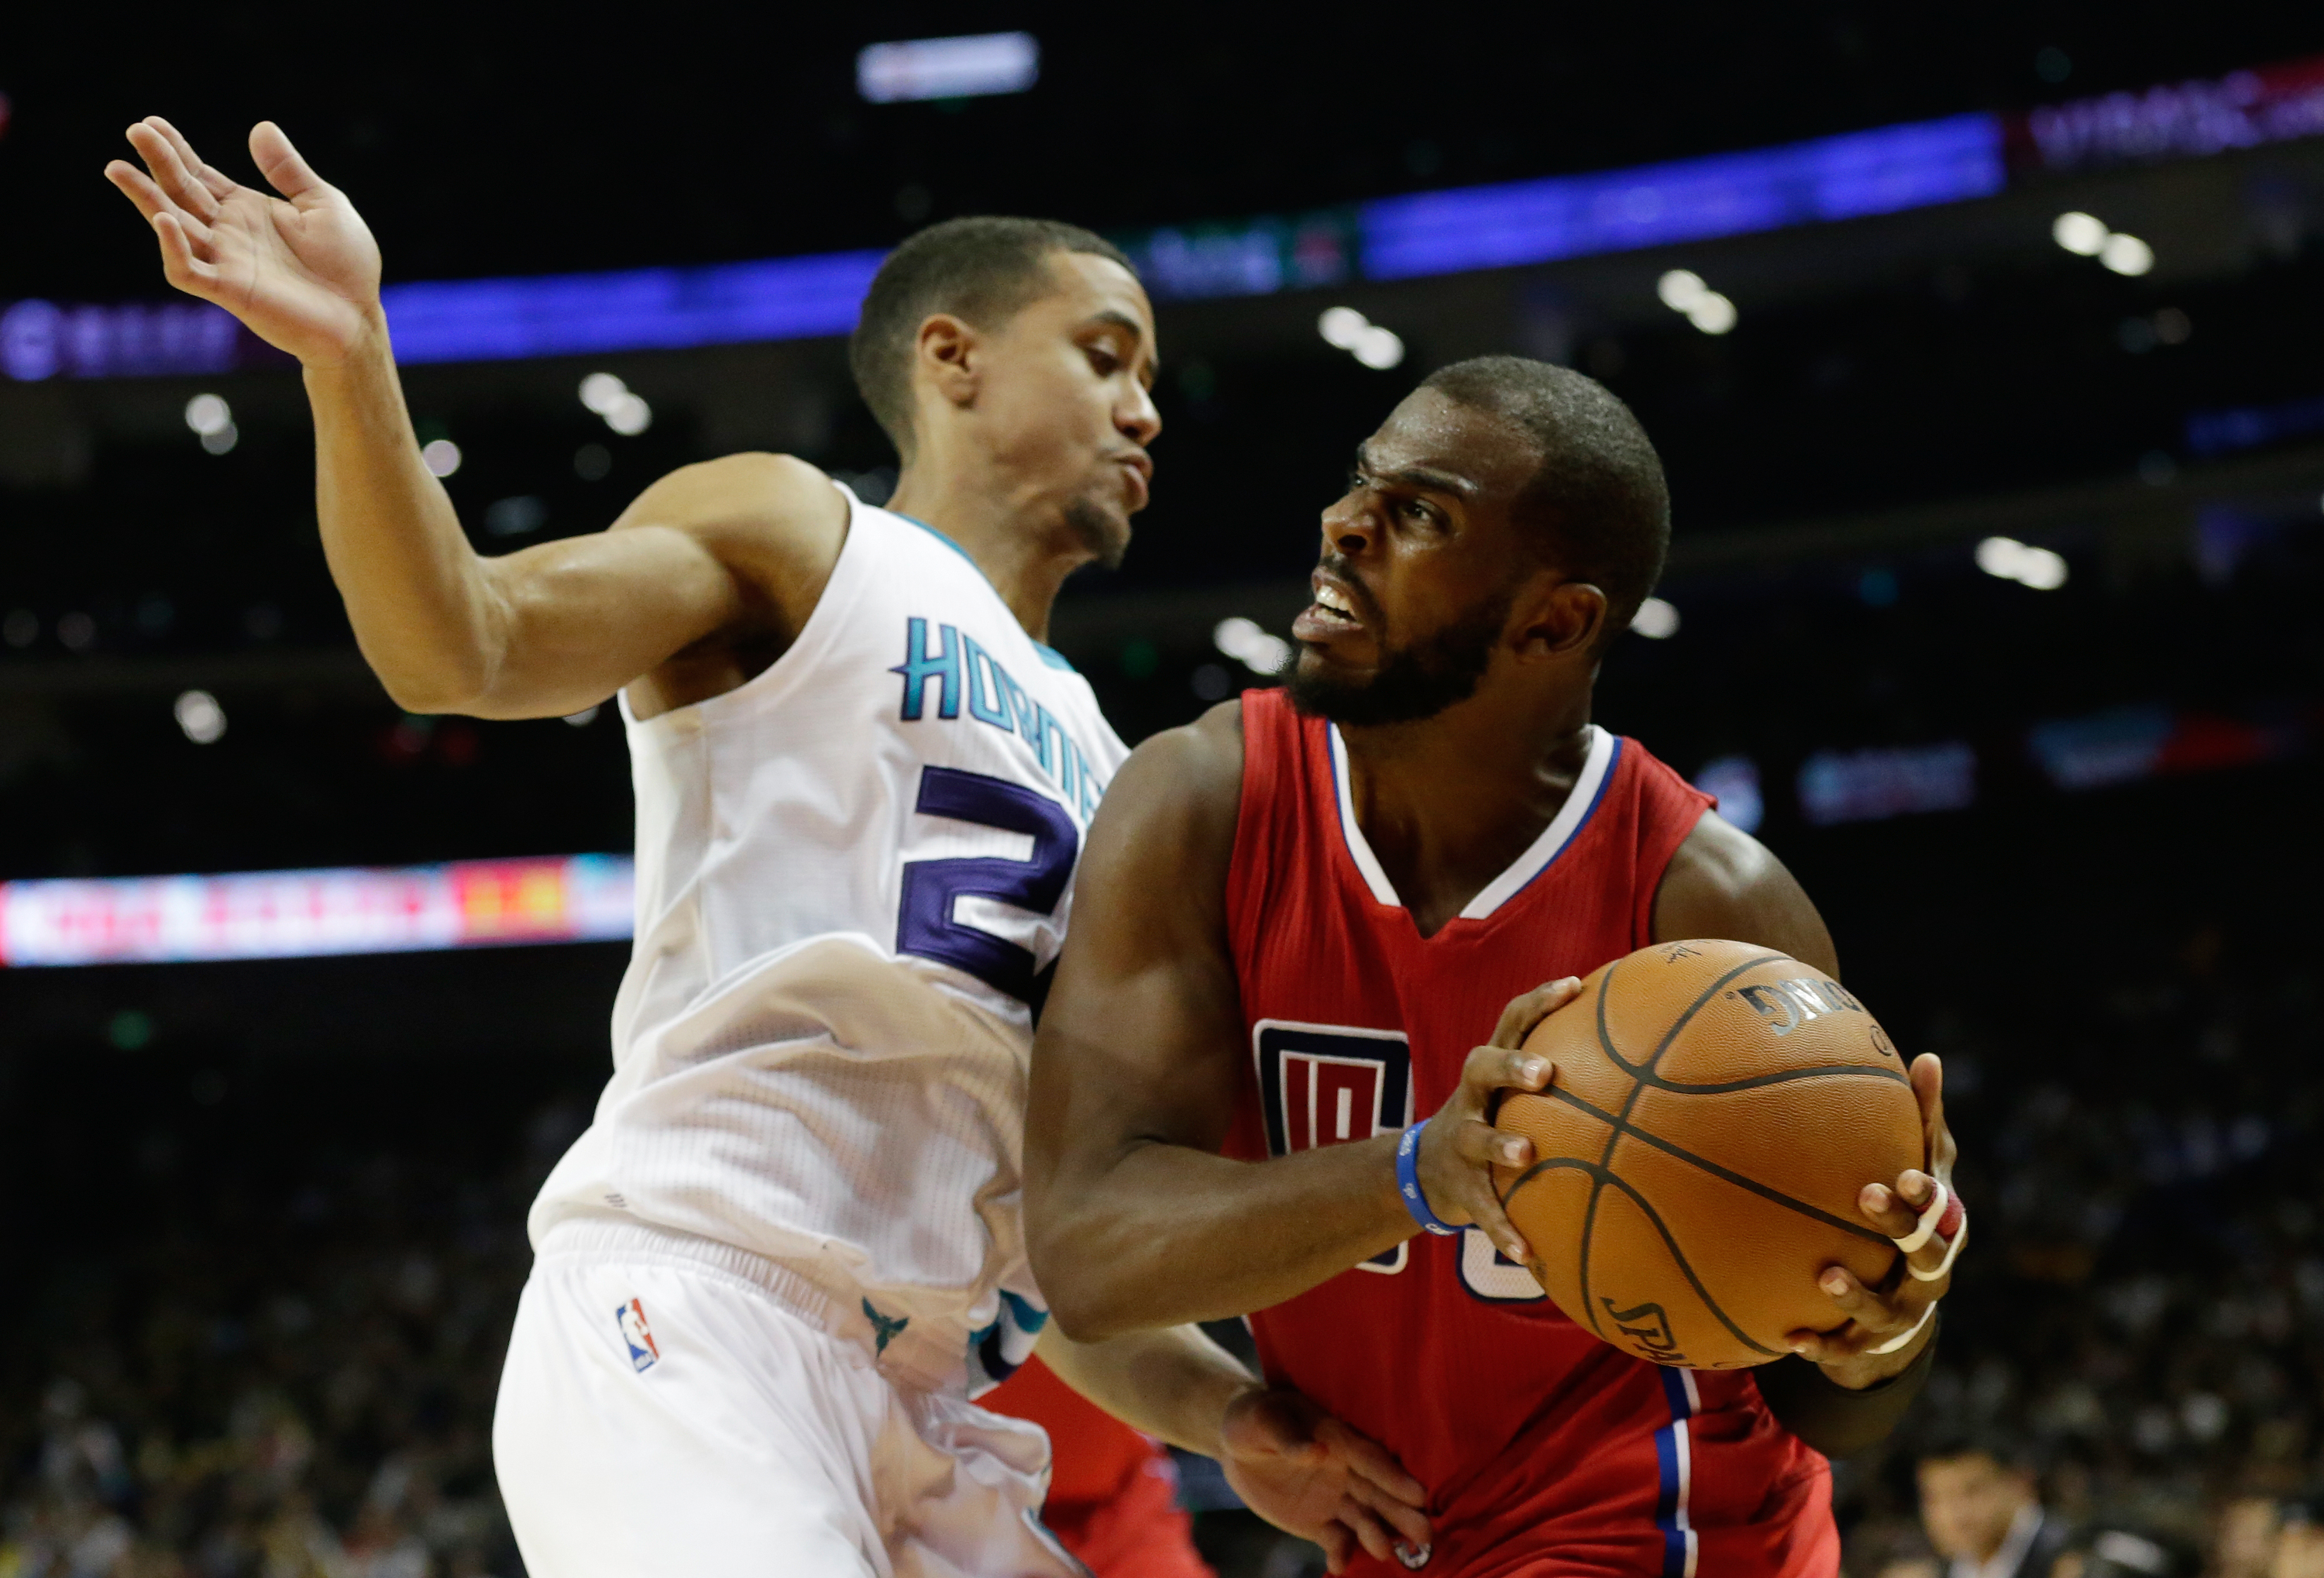 NBA Los Angeles Clippers' Chris Paul, right, tries to pass through Brian Roberts of Charlotte Hornets during the NBA Global Games at the Mercedes-Benz Arena in Shanghai, China, Wednesday, Oct. 14, 2015. (AP Photo/Andy Wong)